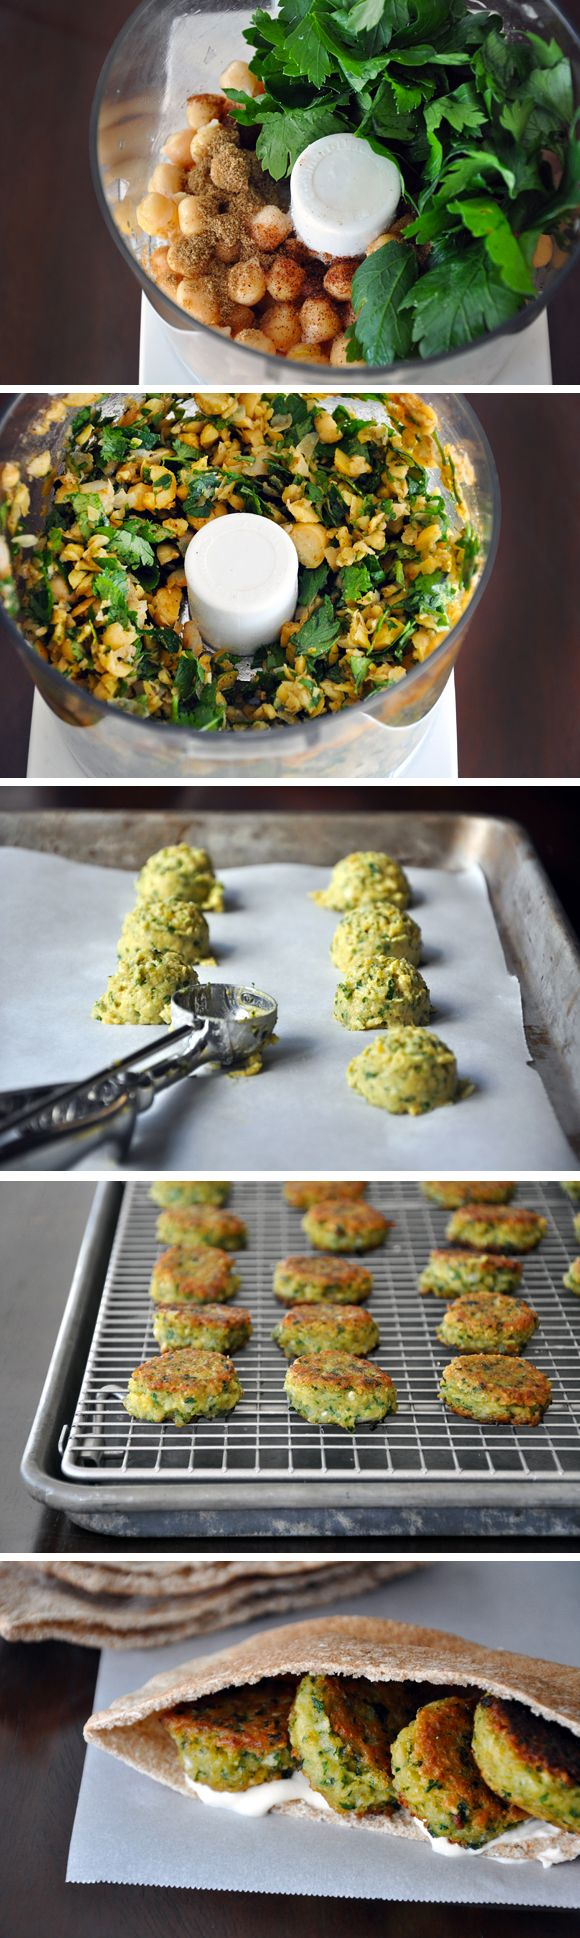 Homemade Falafel with Tahini Sauce from justataste.com #recipe